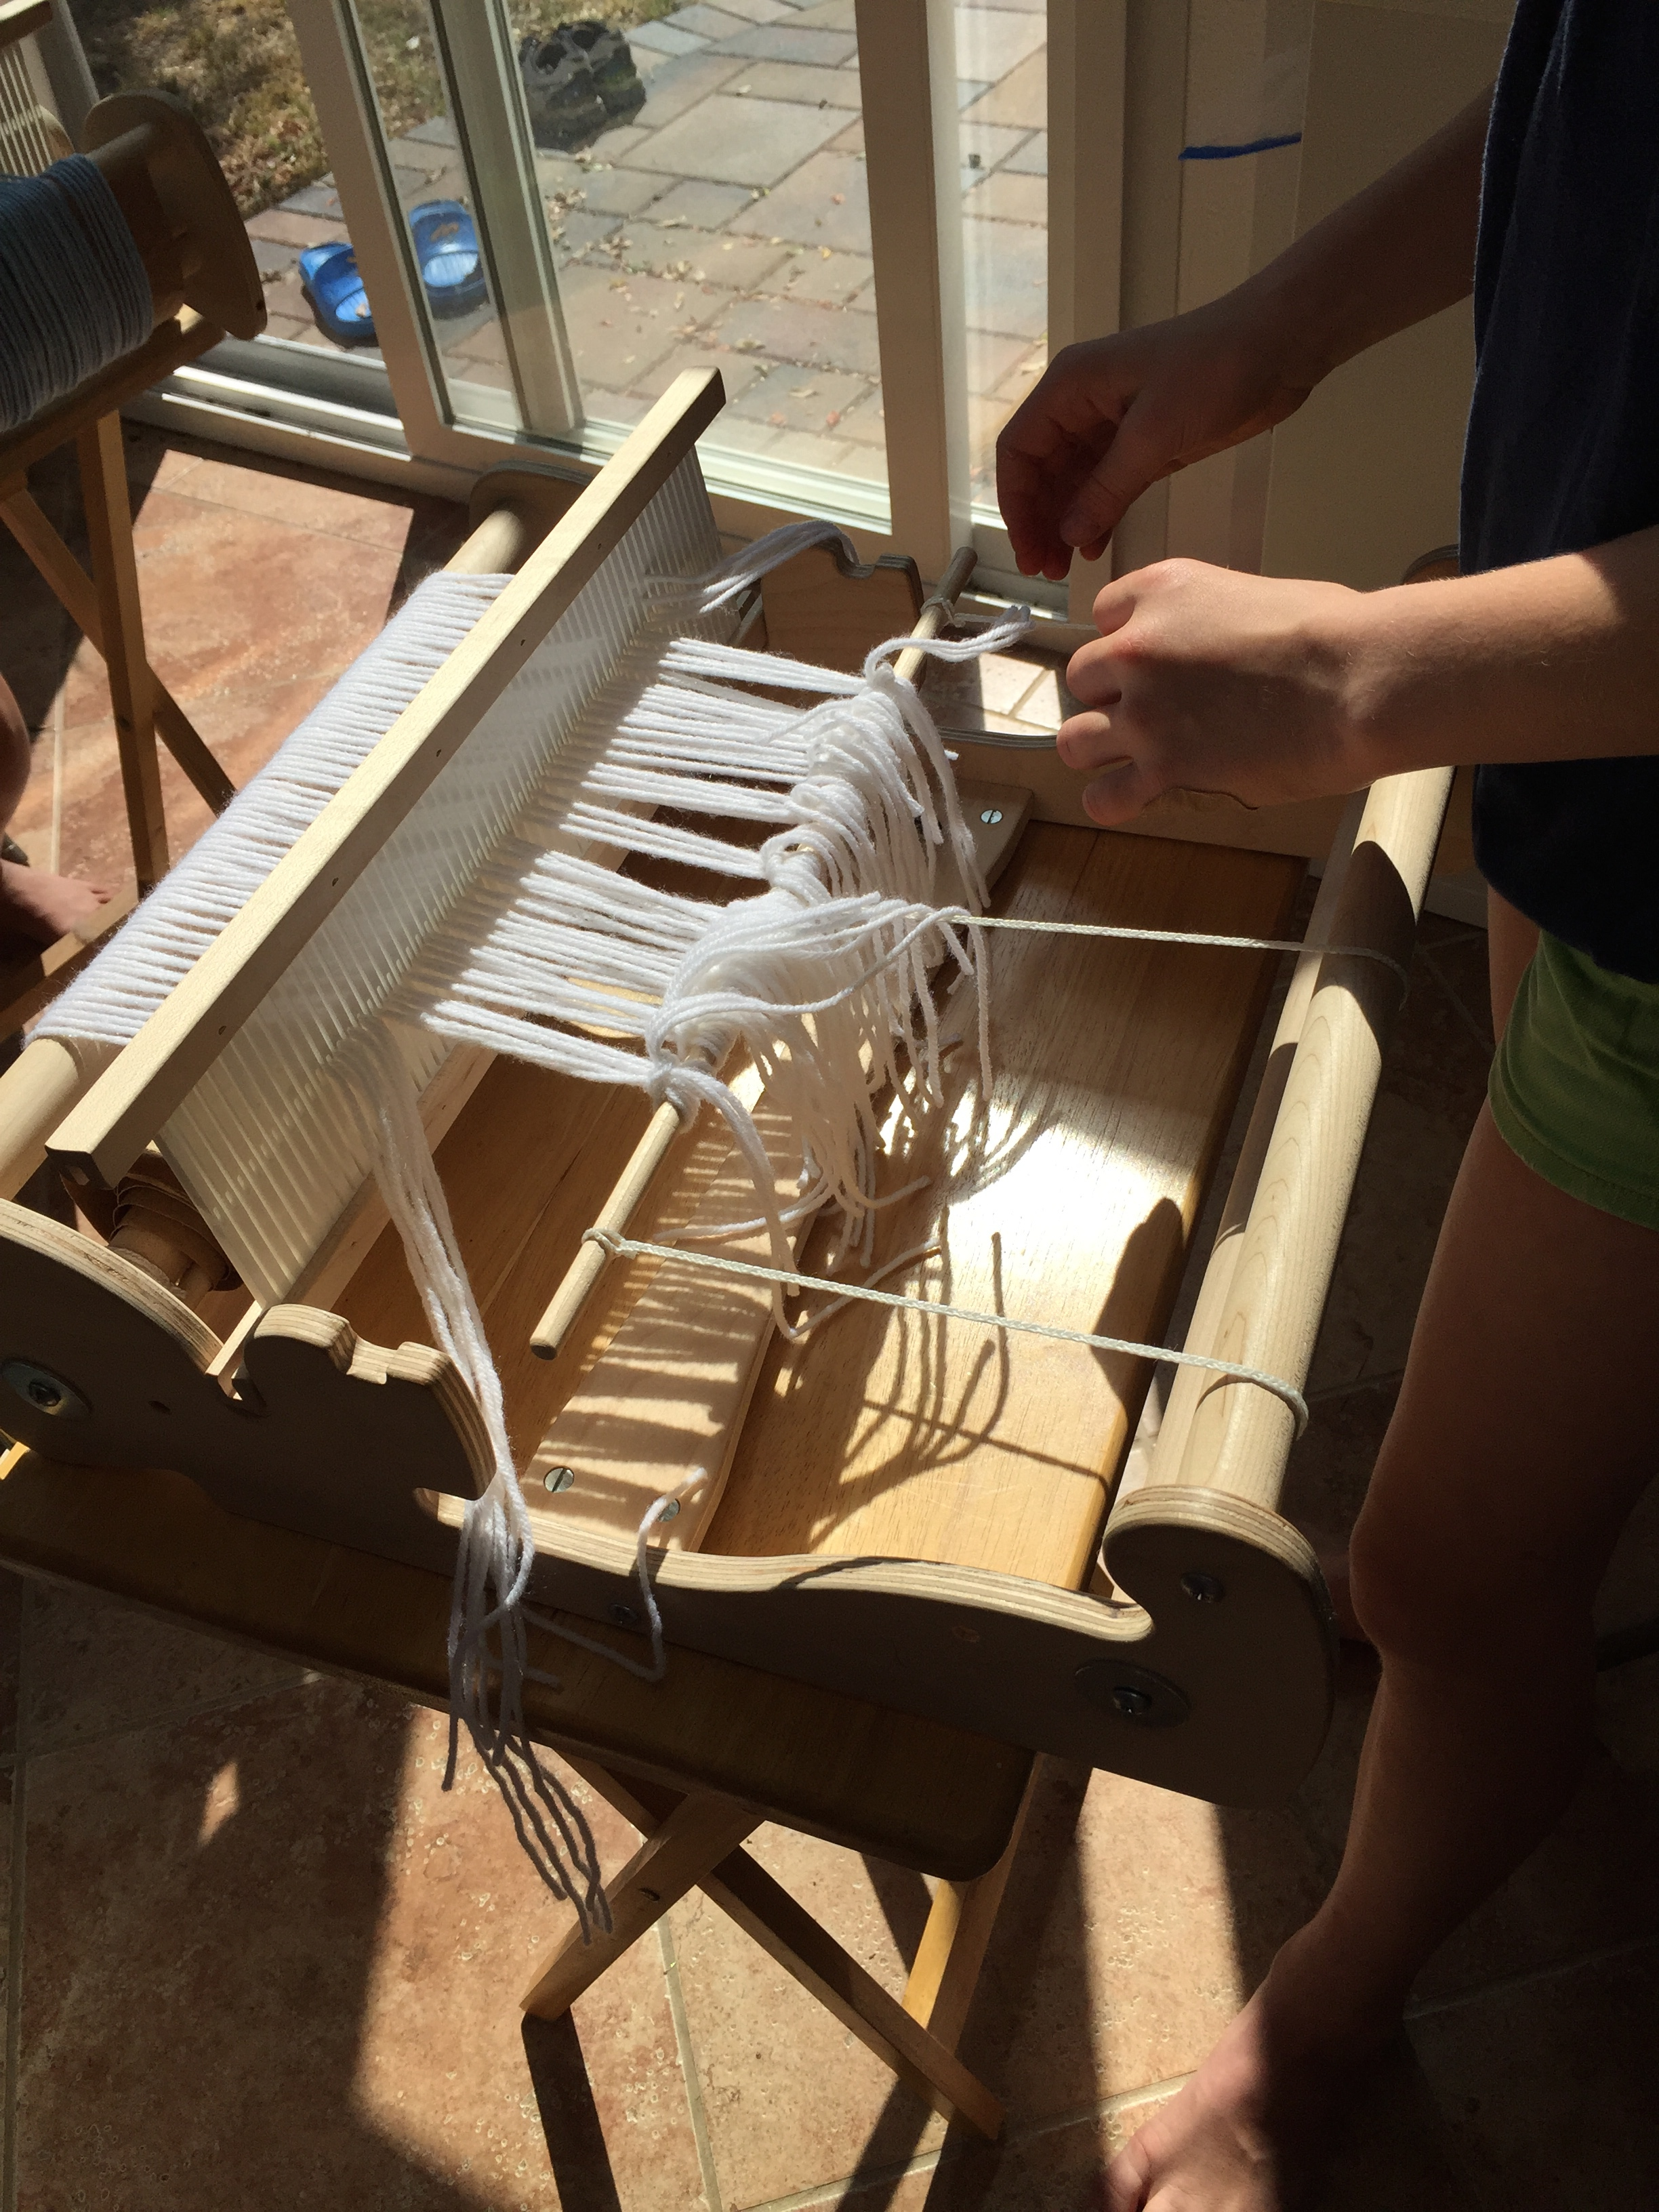 Warping a new project!